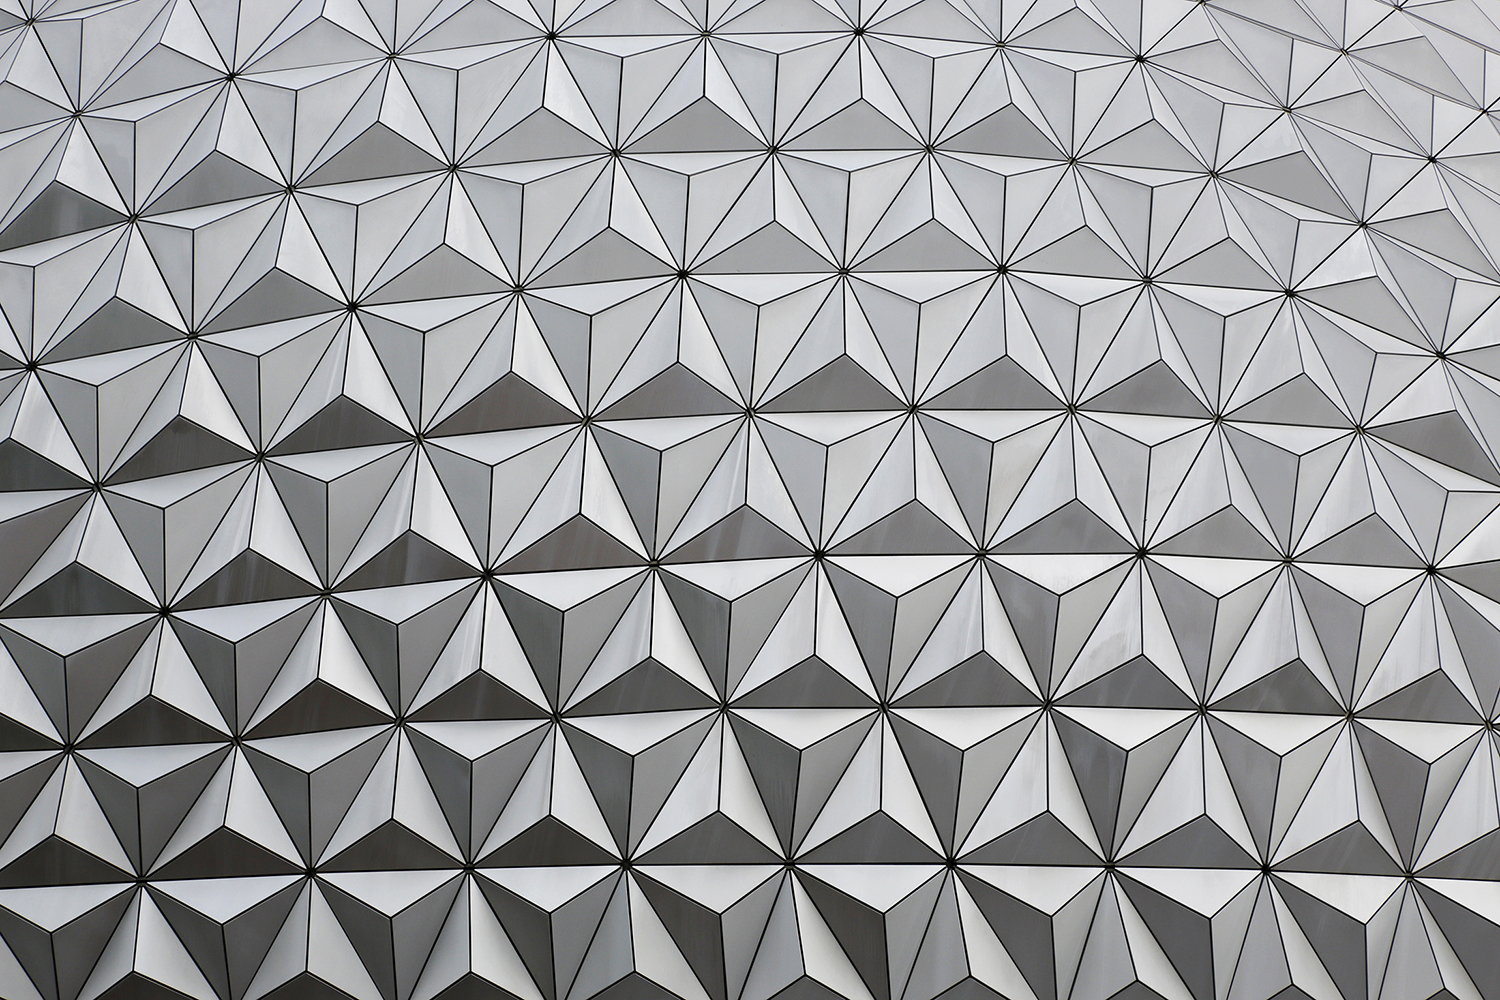 EPCOT in Shades of Gray